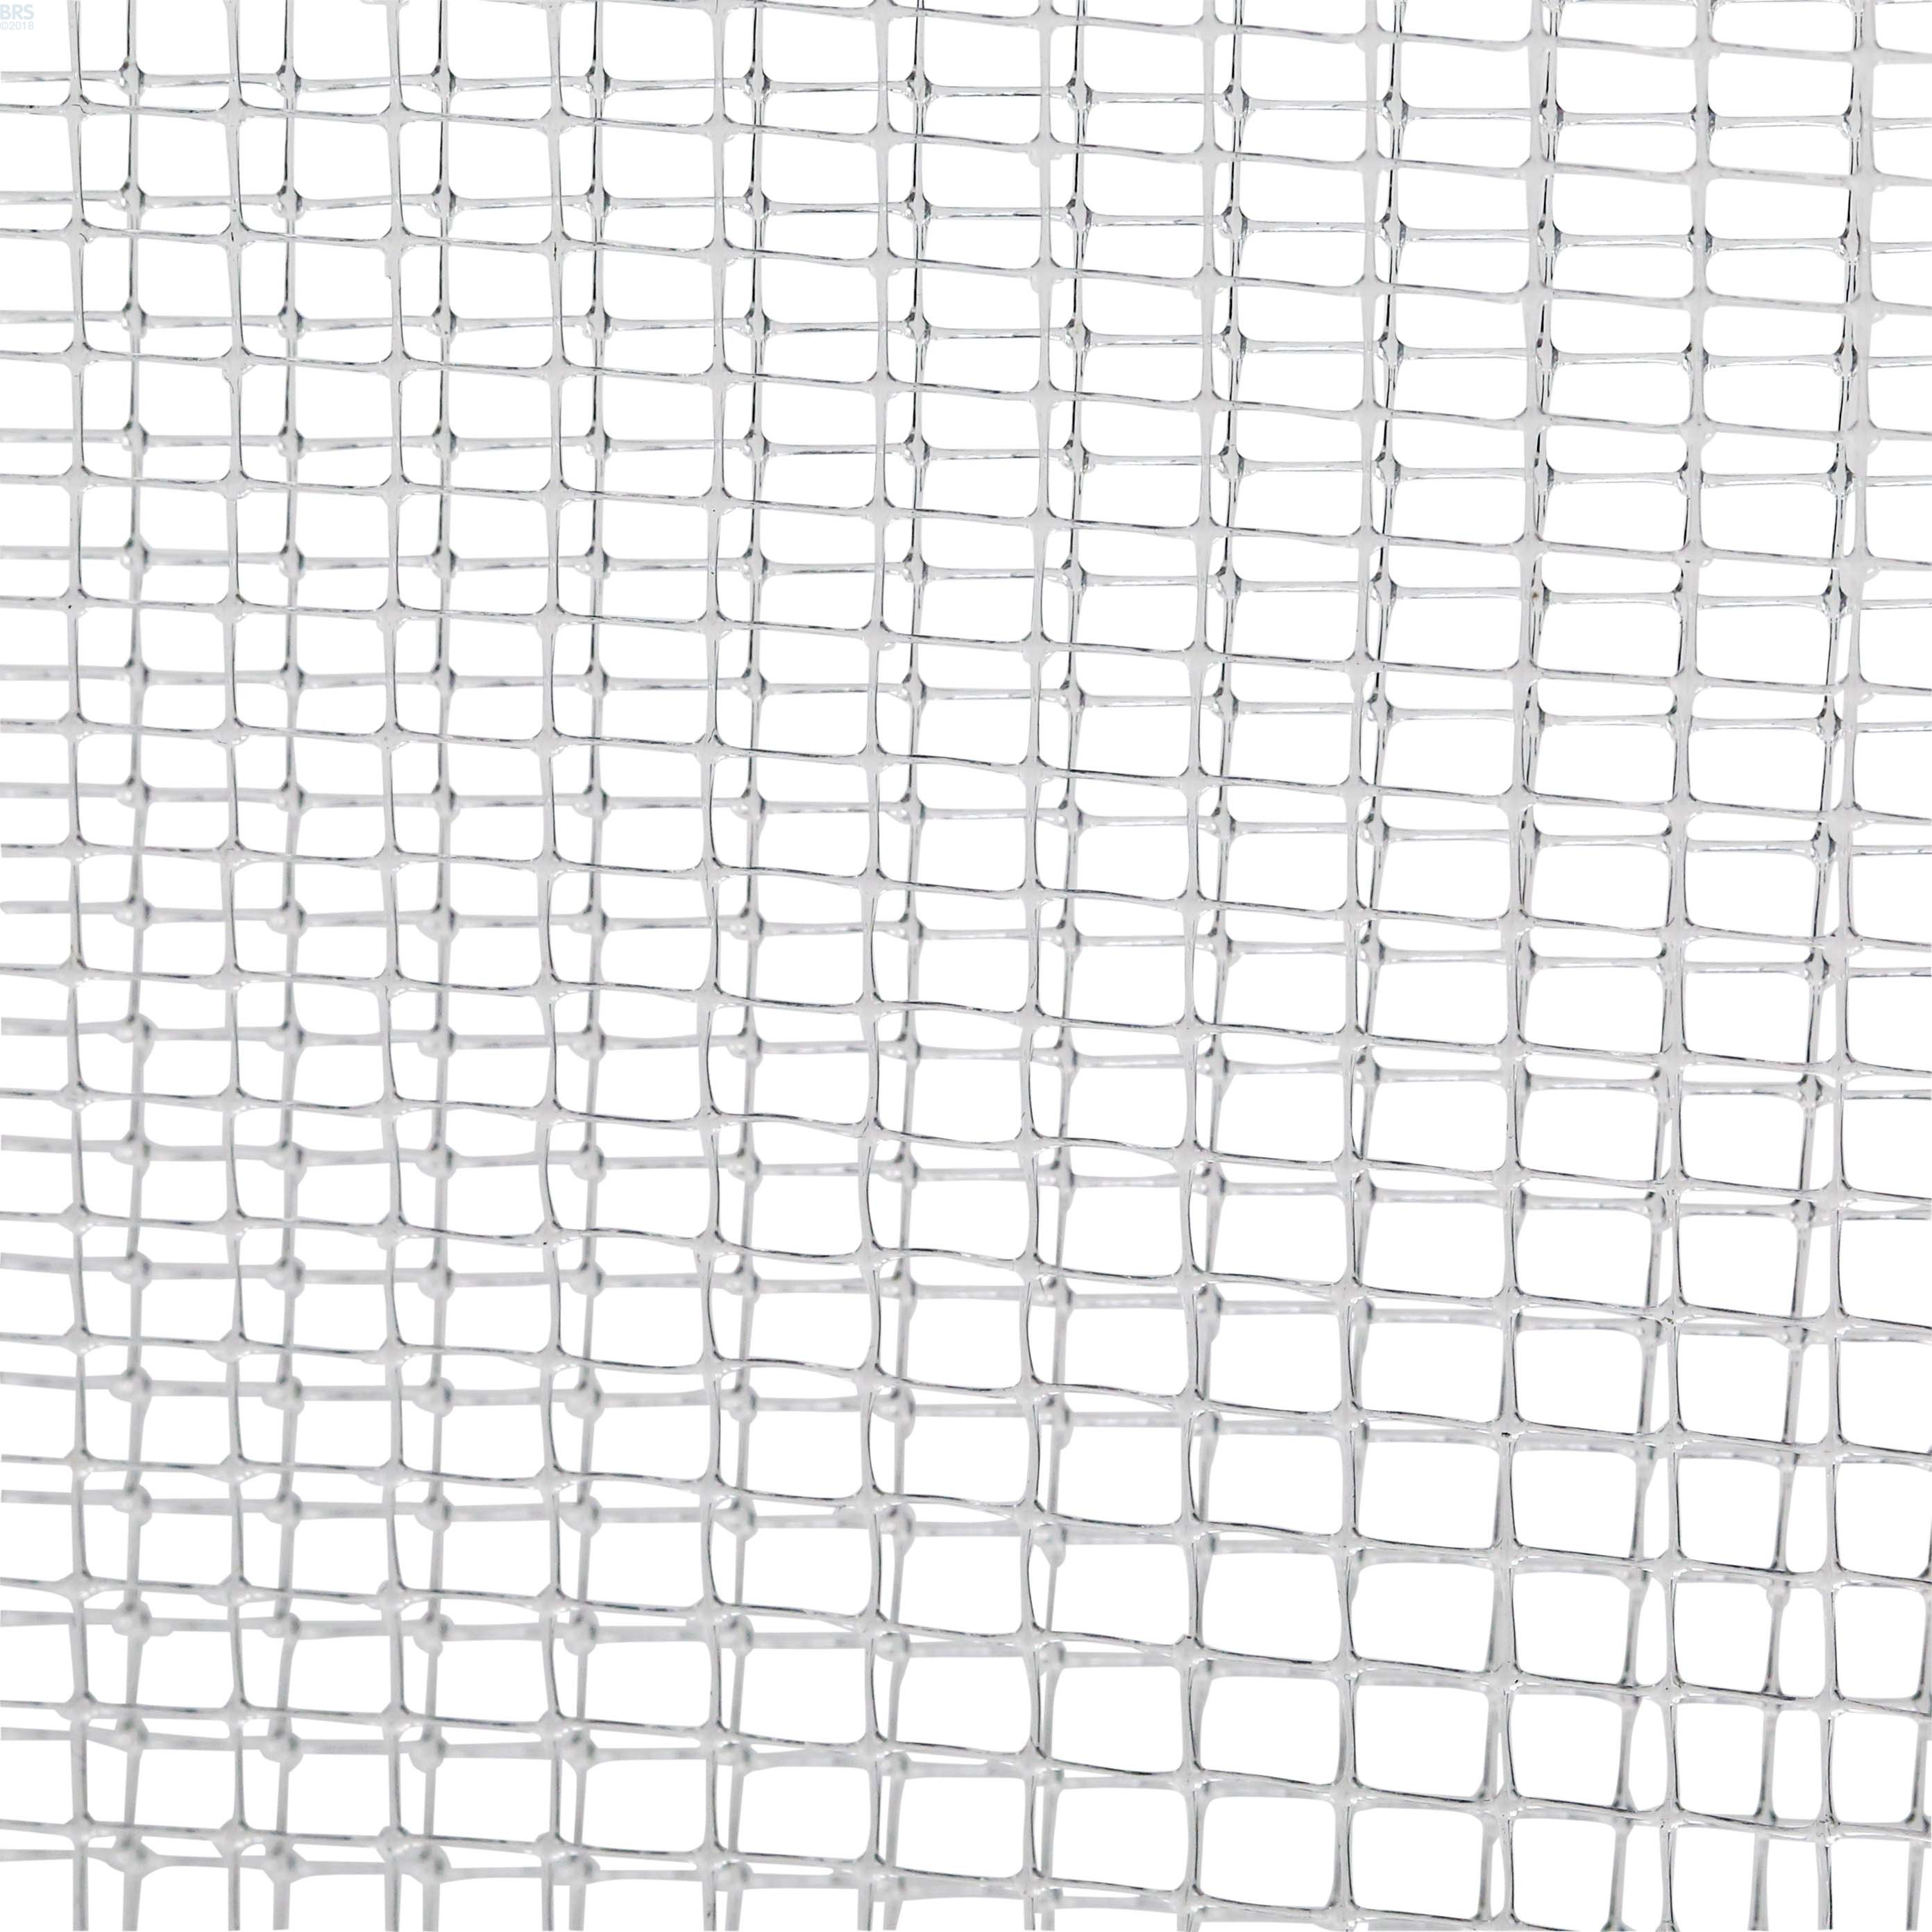 diy aquarium screen top kits for rimless tanks - 1  8 u0026quot  netting - bulk reef supply